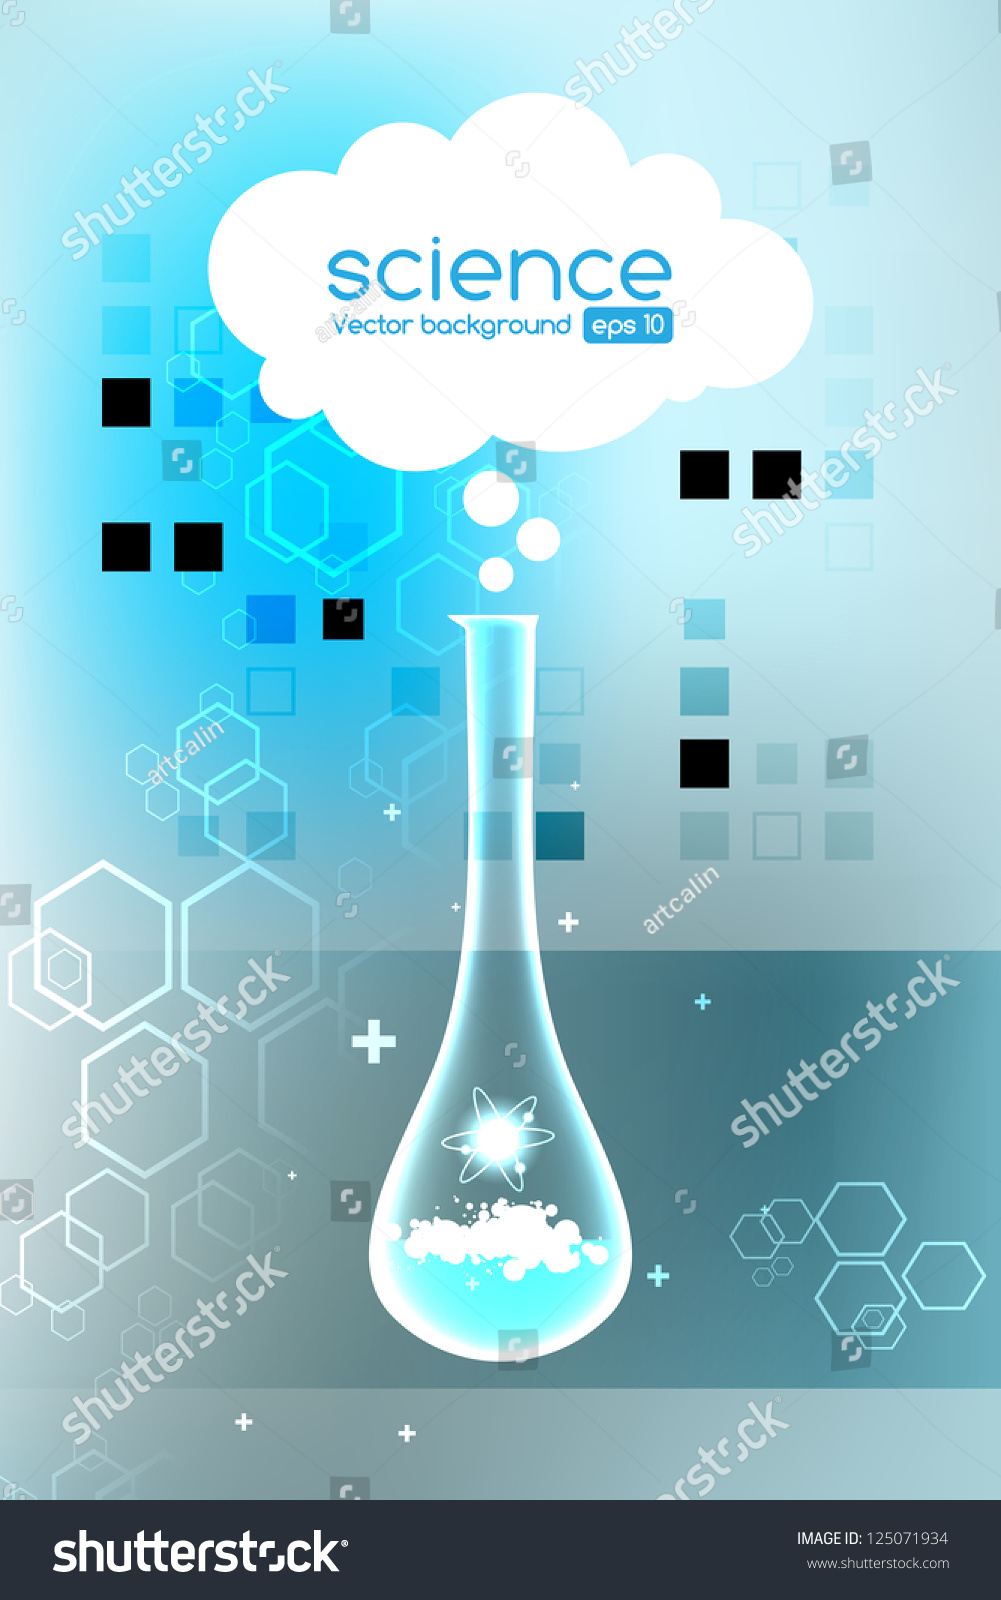 science and technology wallpaper - photo #14